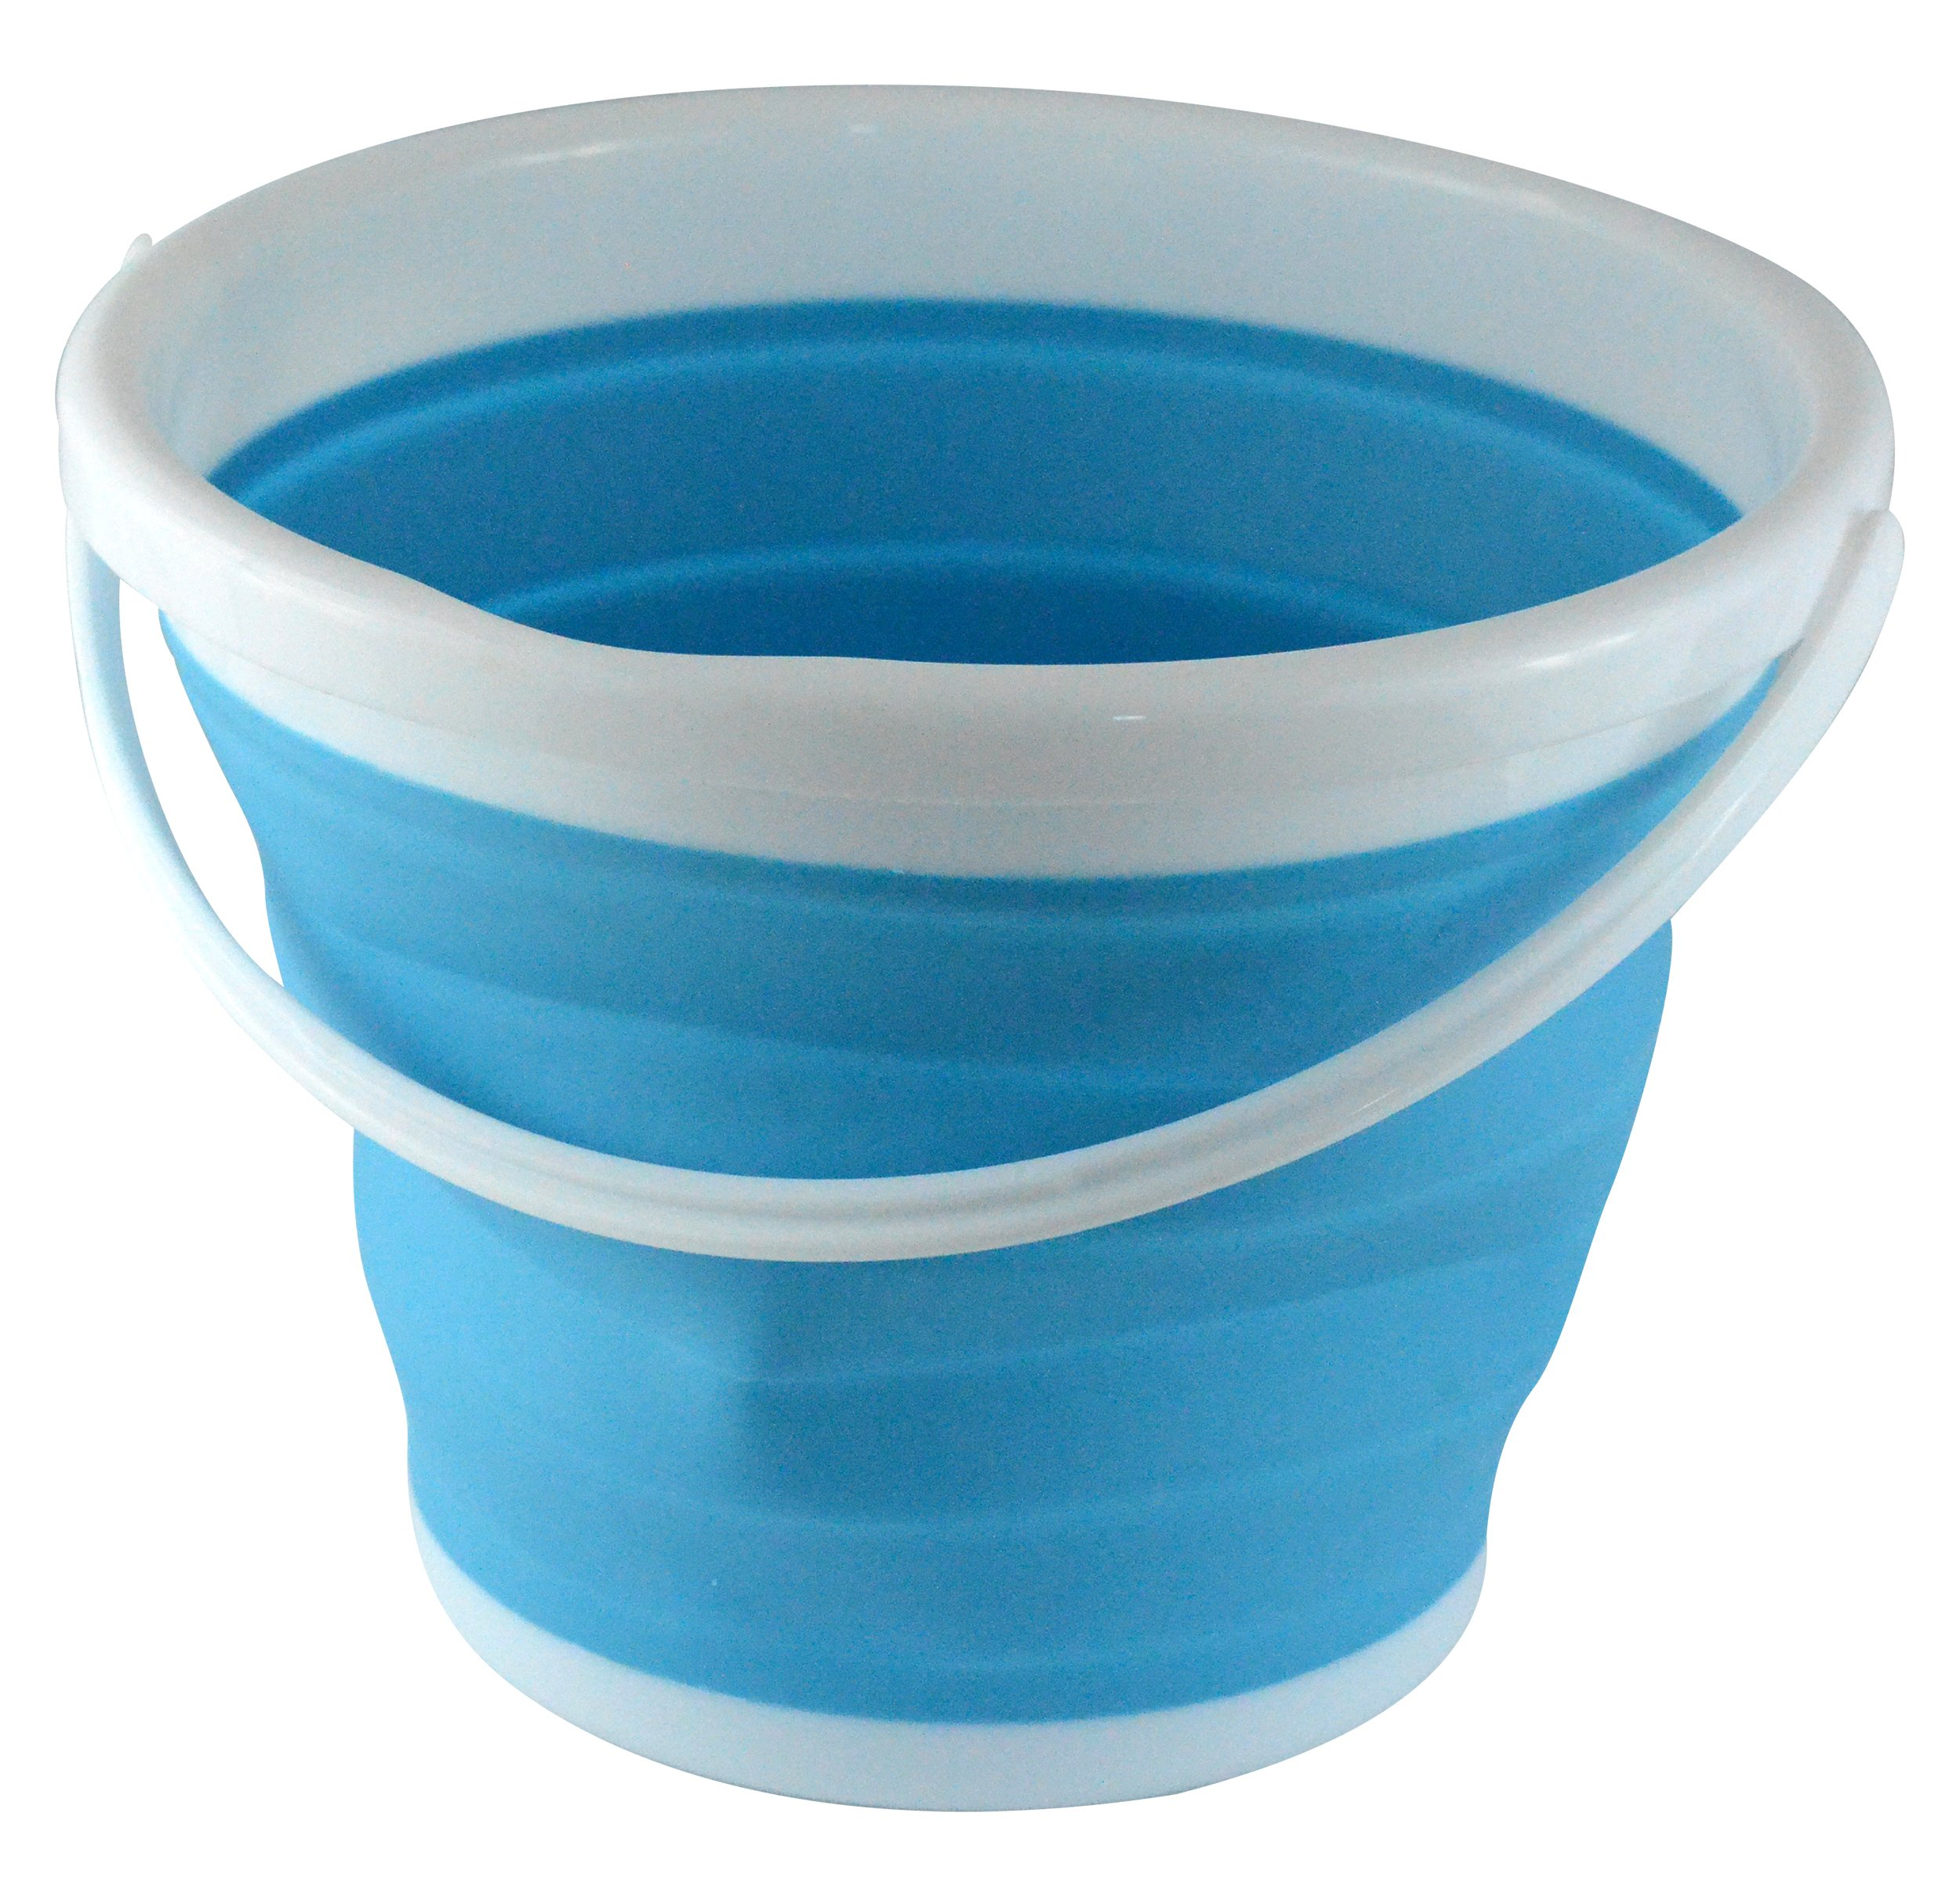 Southern Homewares Silicone Collapsible 2.65